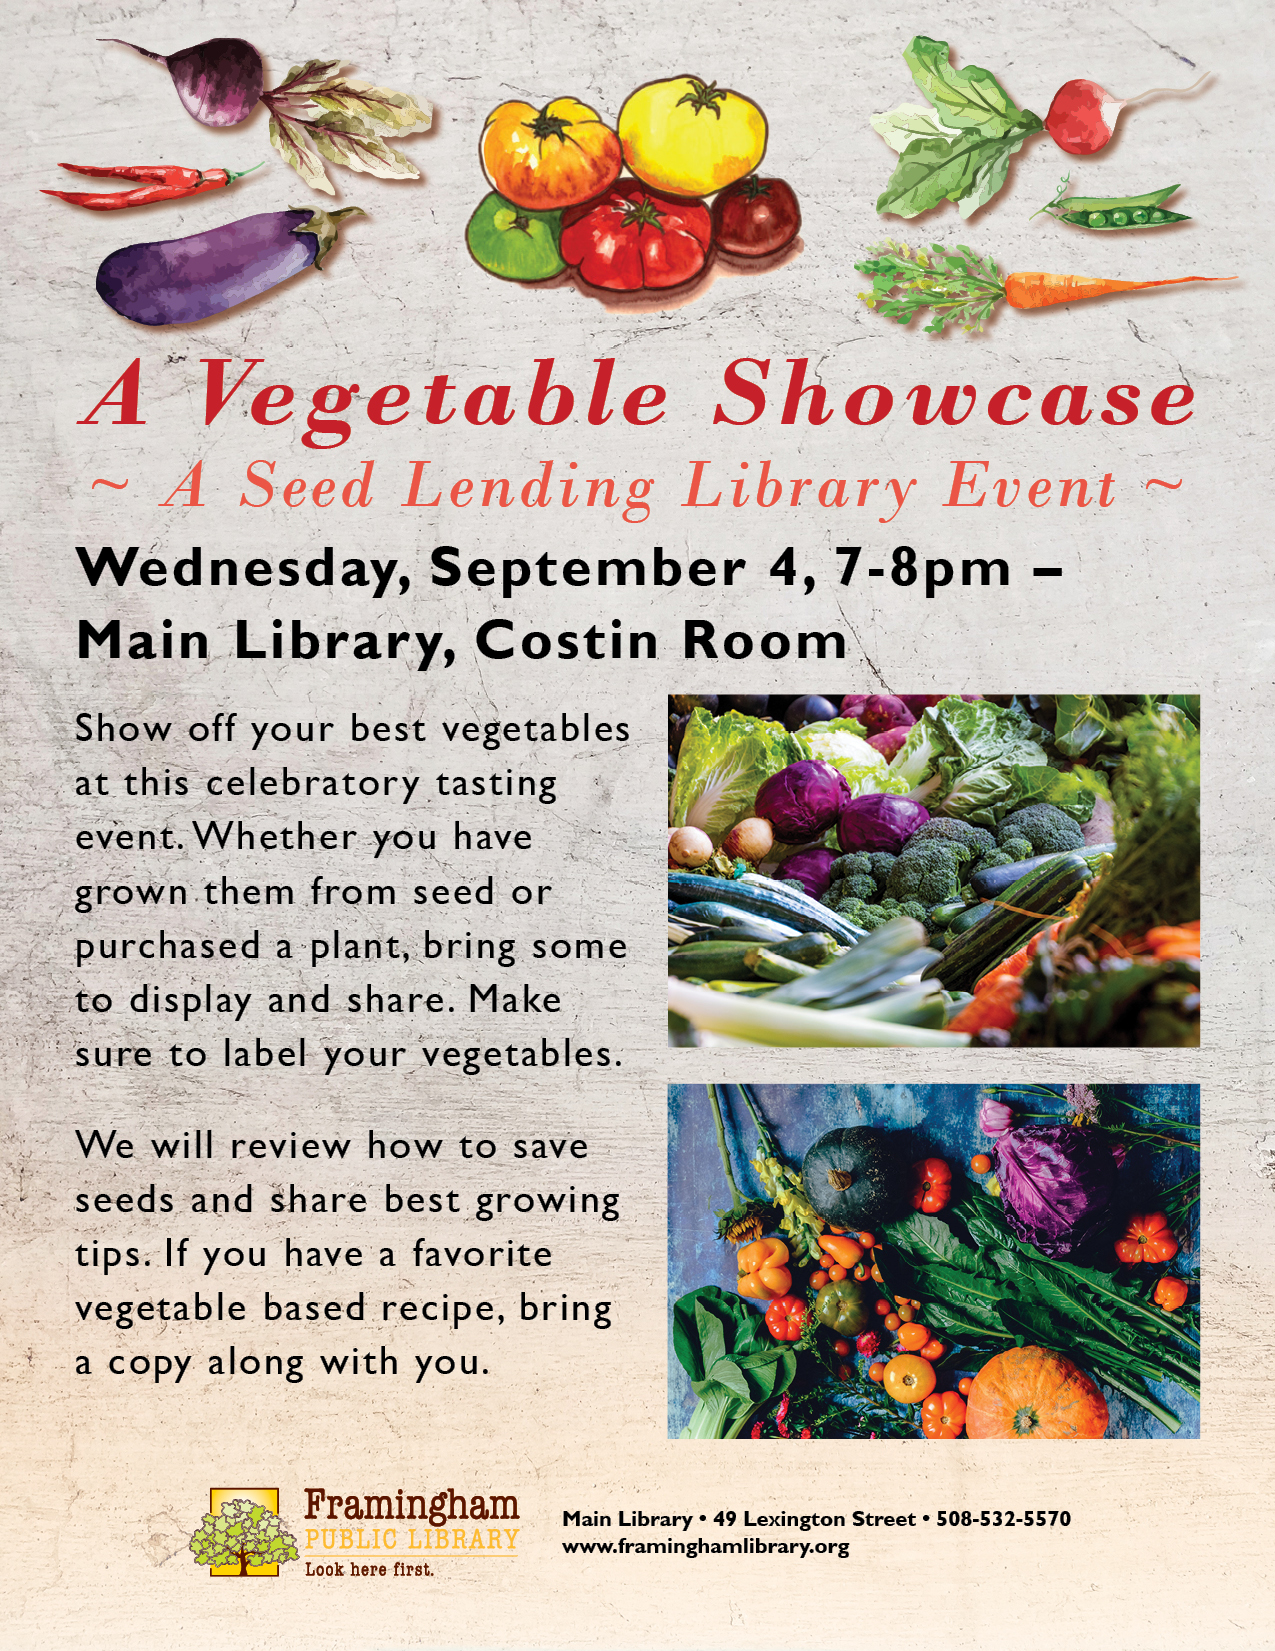 A Vegetable Showcase: A Seed Lending Library Event thumbnail Photo